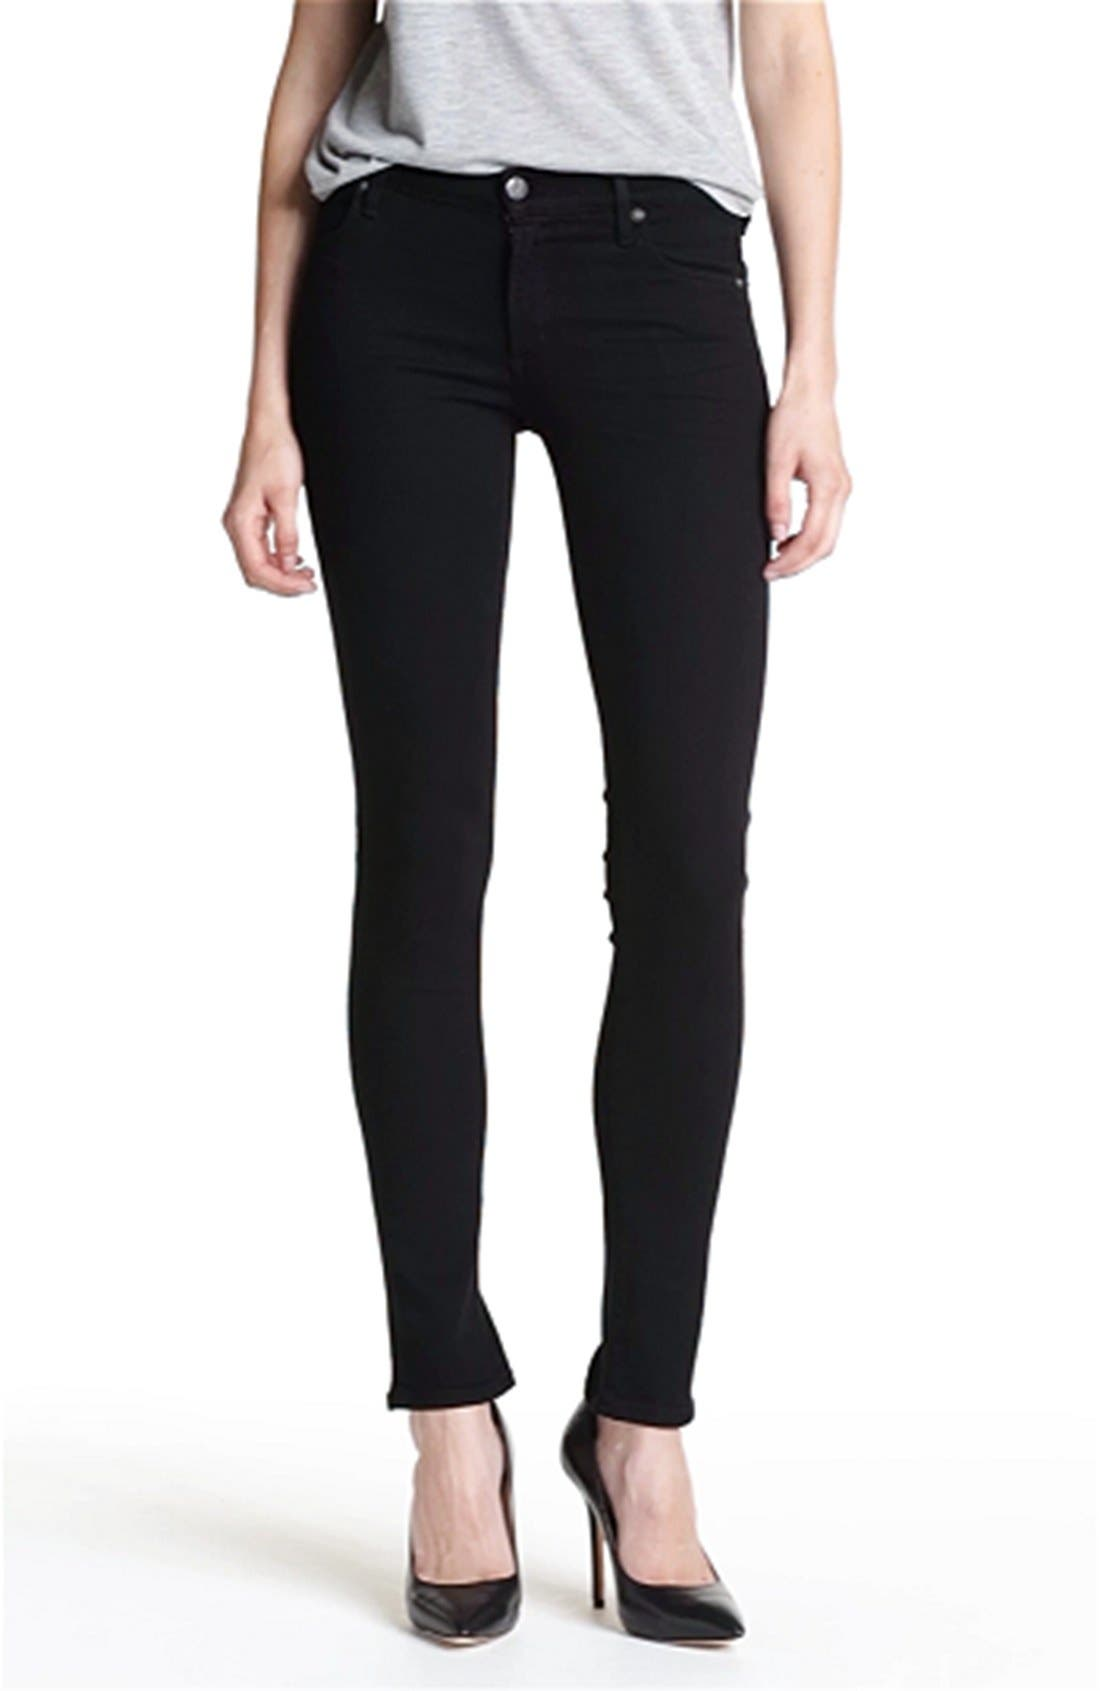 Skinny Stretch Leggings,                             Alternate thumbnail 3, color,                             010